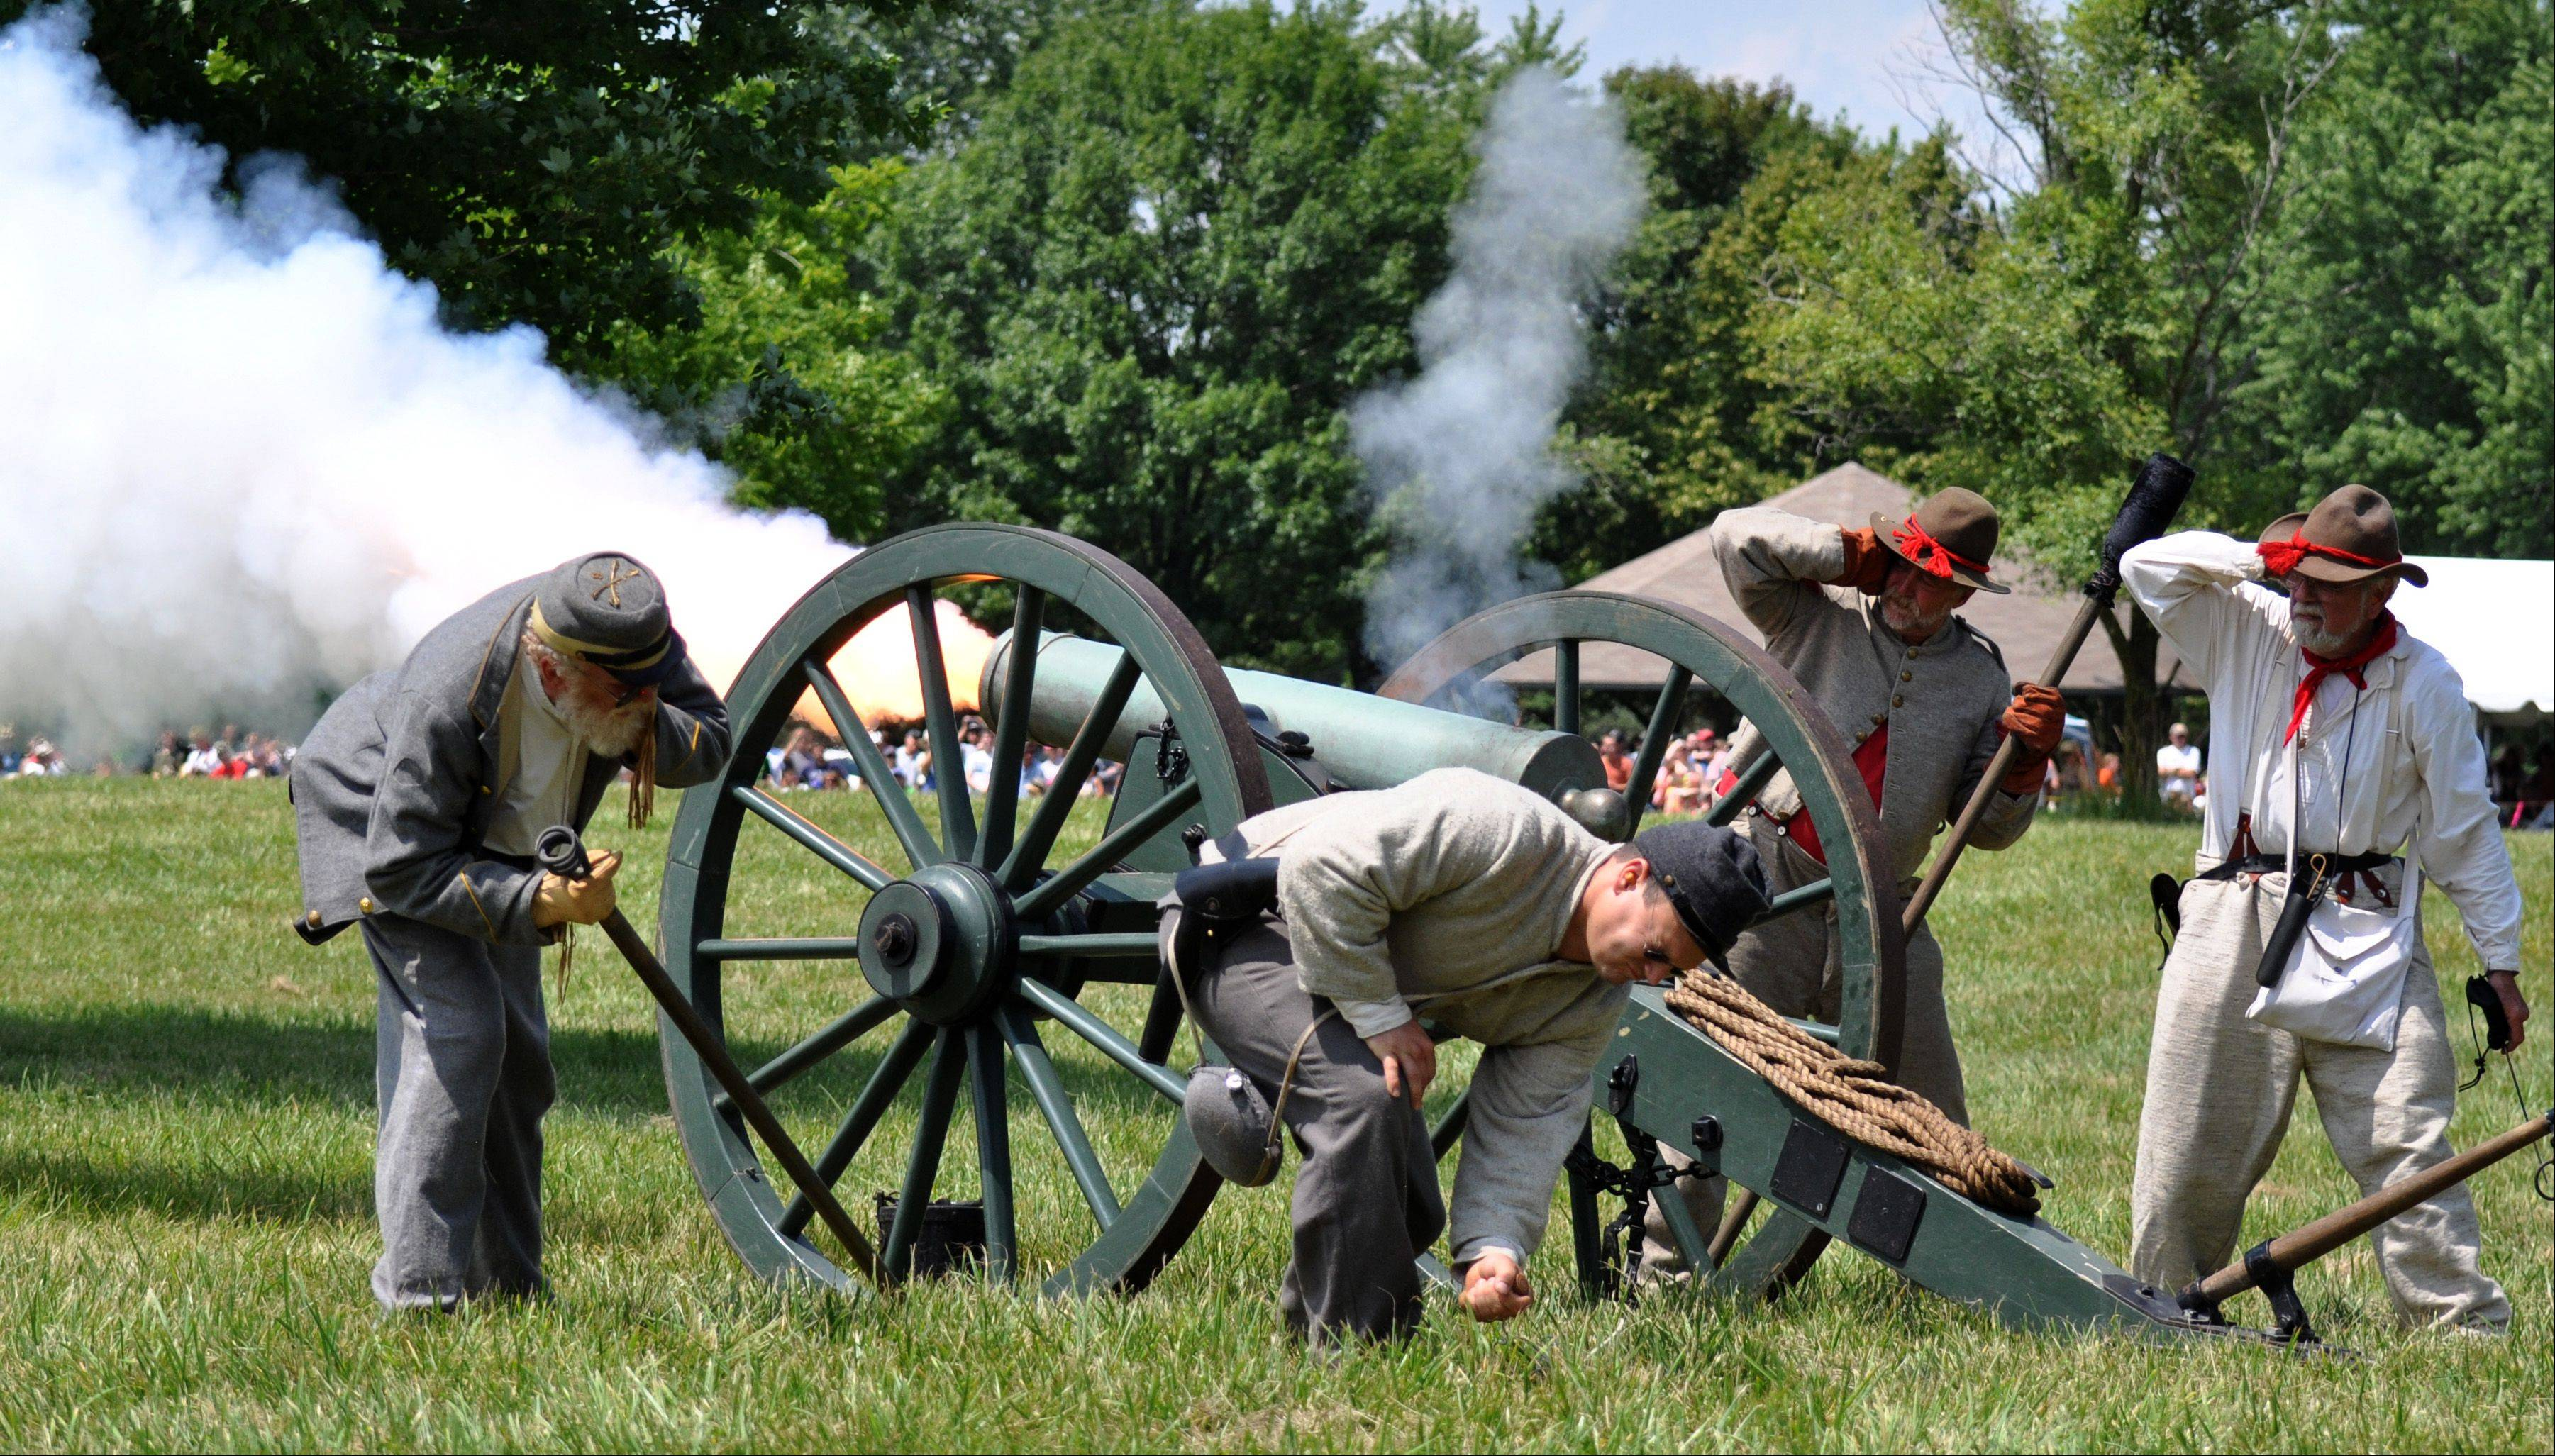 The 9th Virginia Calvary fires a canon during a battle re-enactment at Civil War Days held at the Lakewood Forest Preserve Sunday, July 14.